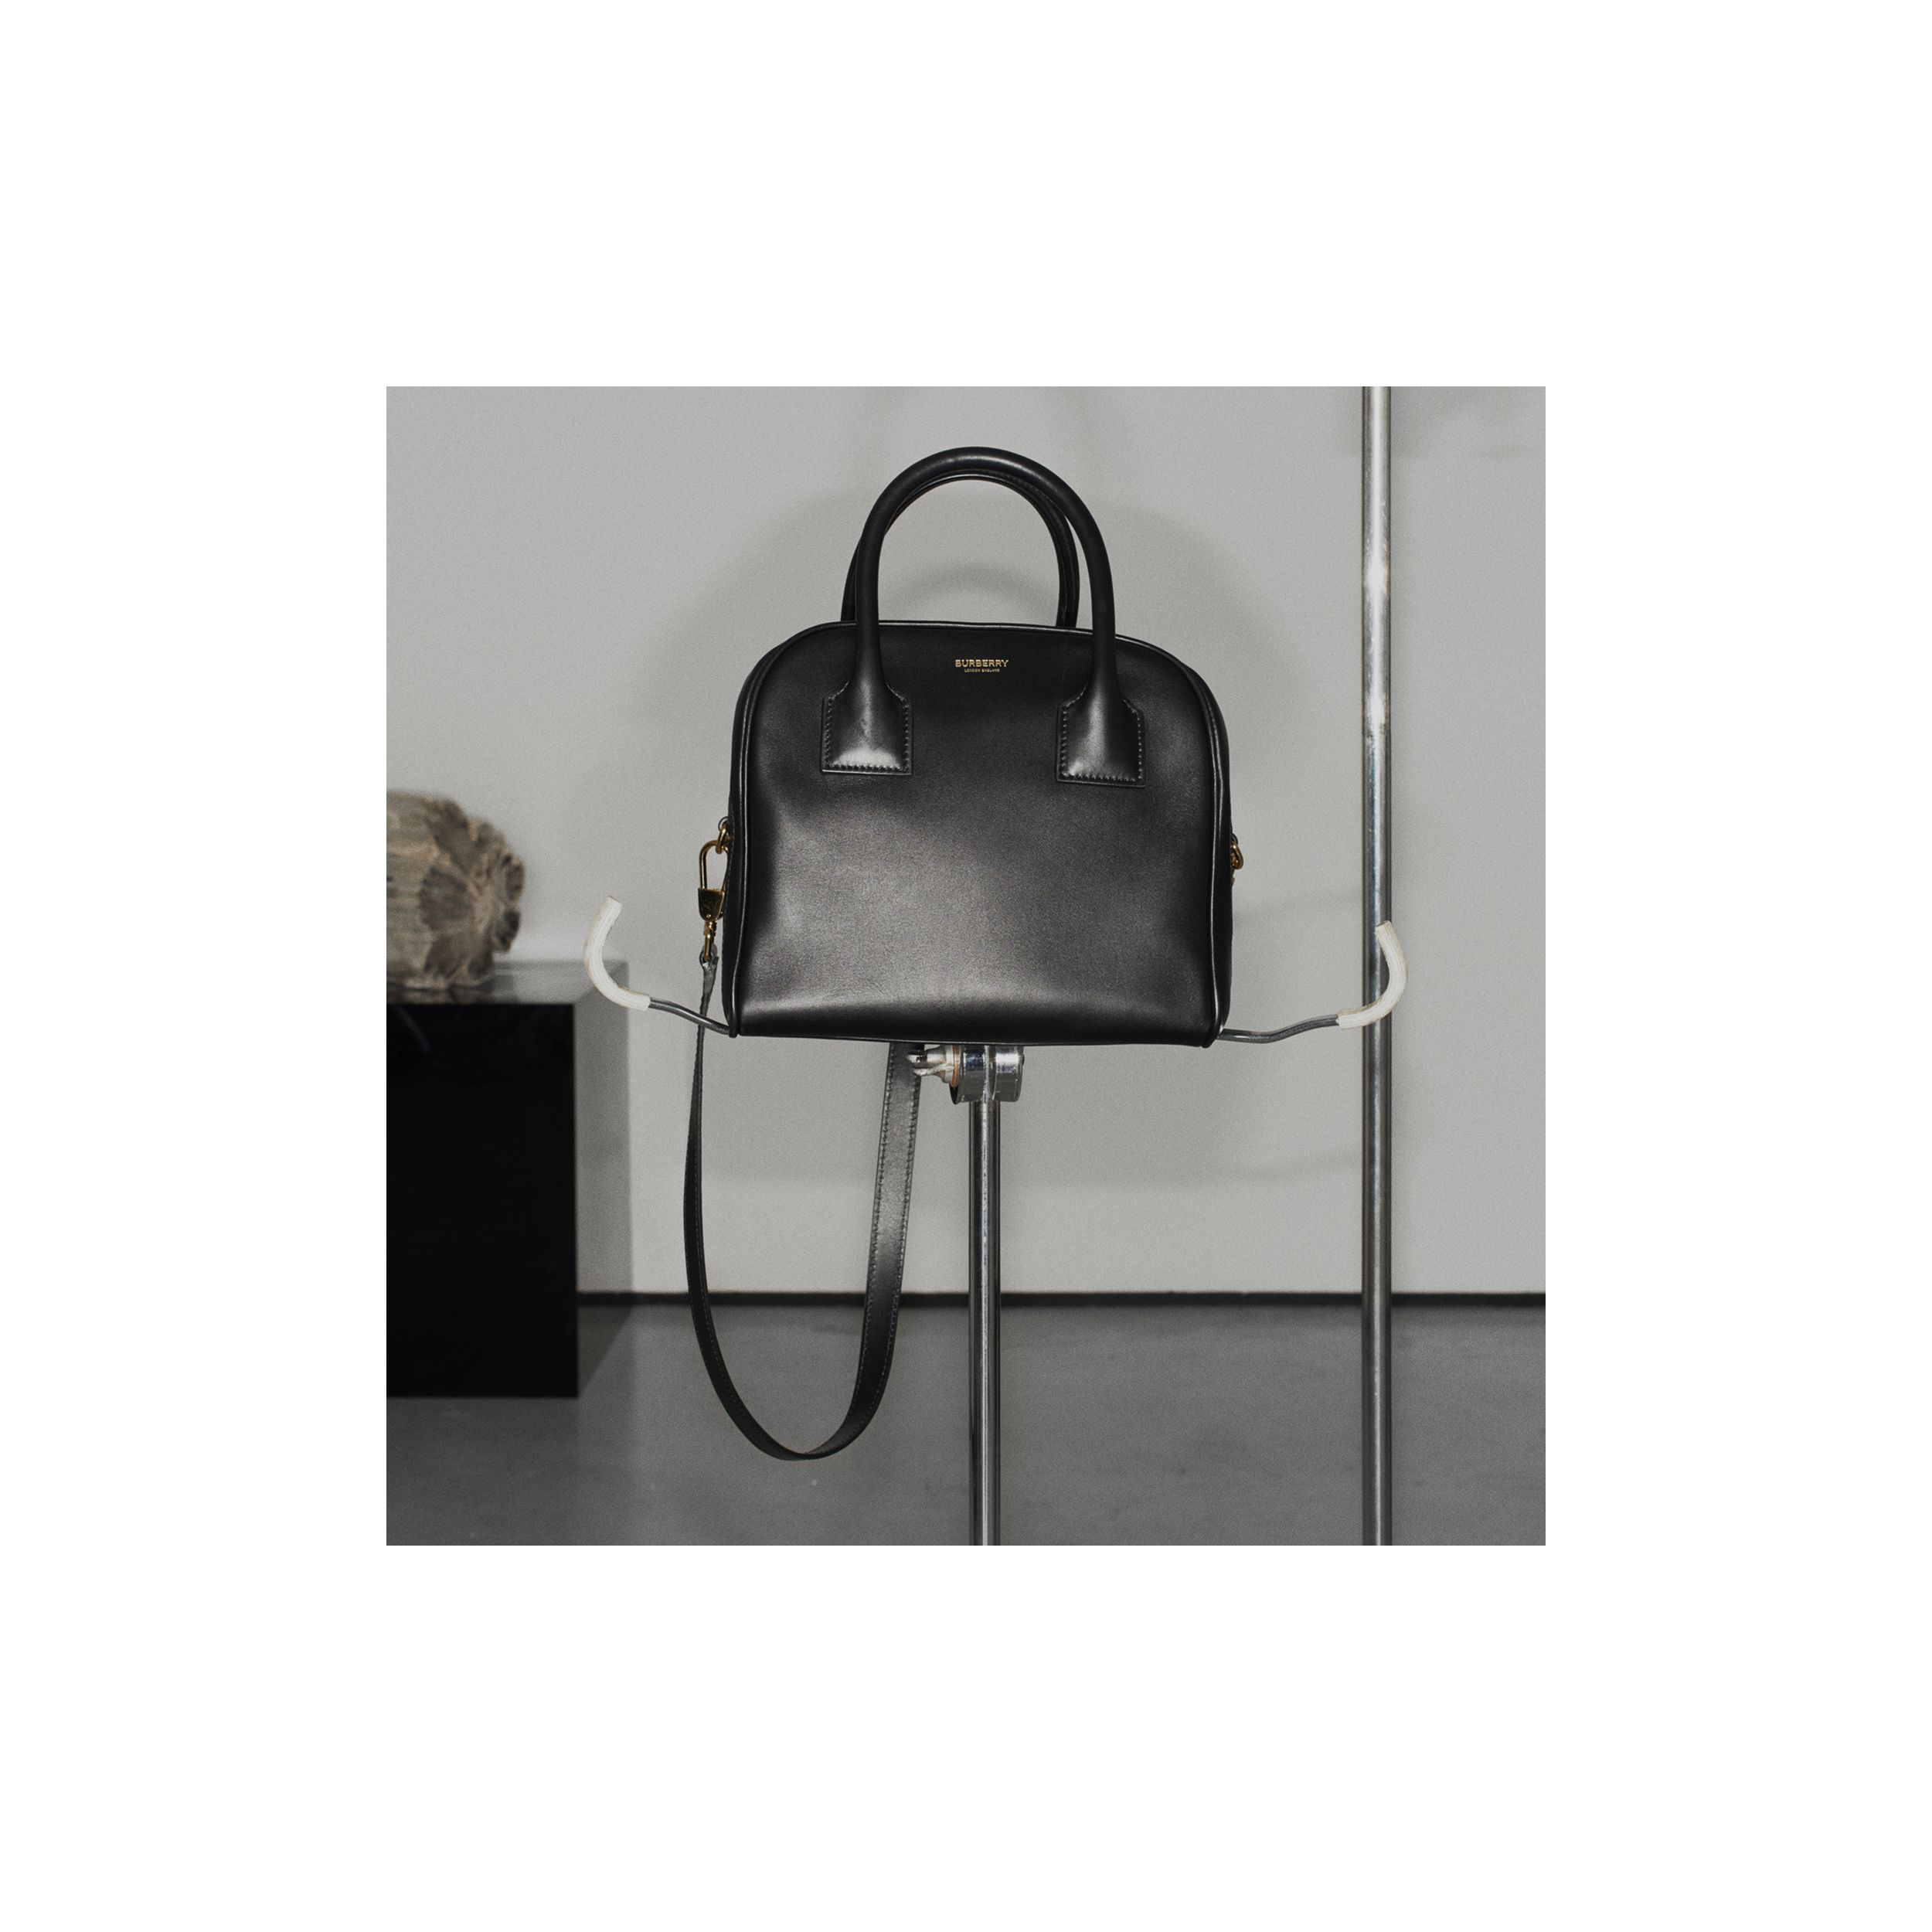 Small Leather Cube Bag in Black - Women | Burberry - 2